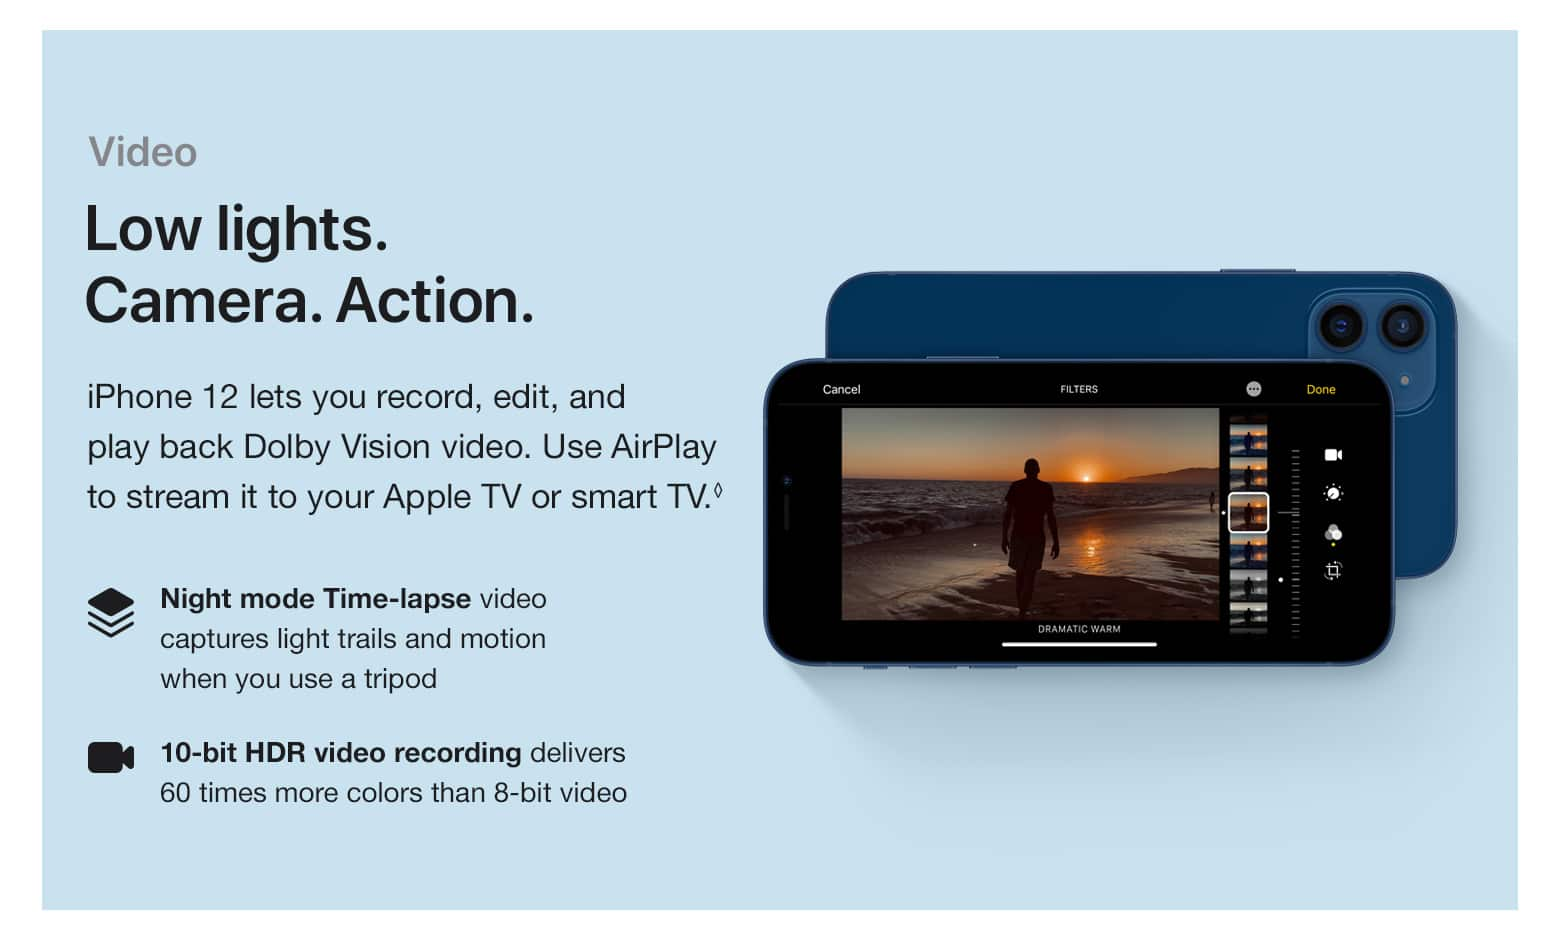 Video. Low lights. Camera. Action. iPhone 12 lets you record, edit, and play back Dolby Vision video. Use AirPlay to stream it to your Apple TV or smart TV.(♢) Night mode Time-lapse video captures light trails and motion when you use a tripod. 10-bit HDR video recording delivers 60 times more colors than 8	-bit video.